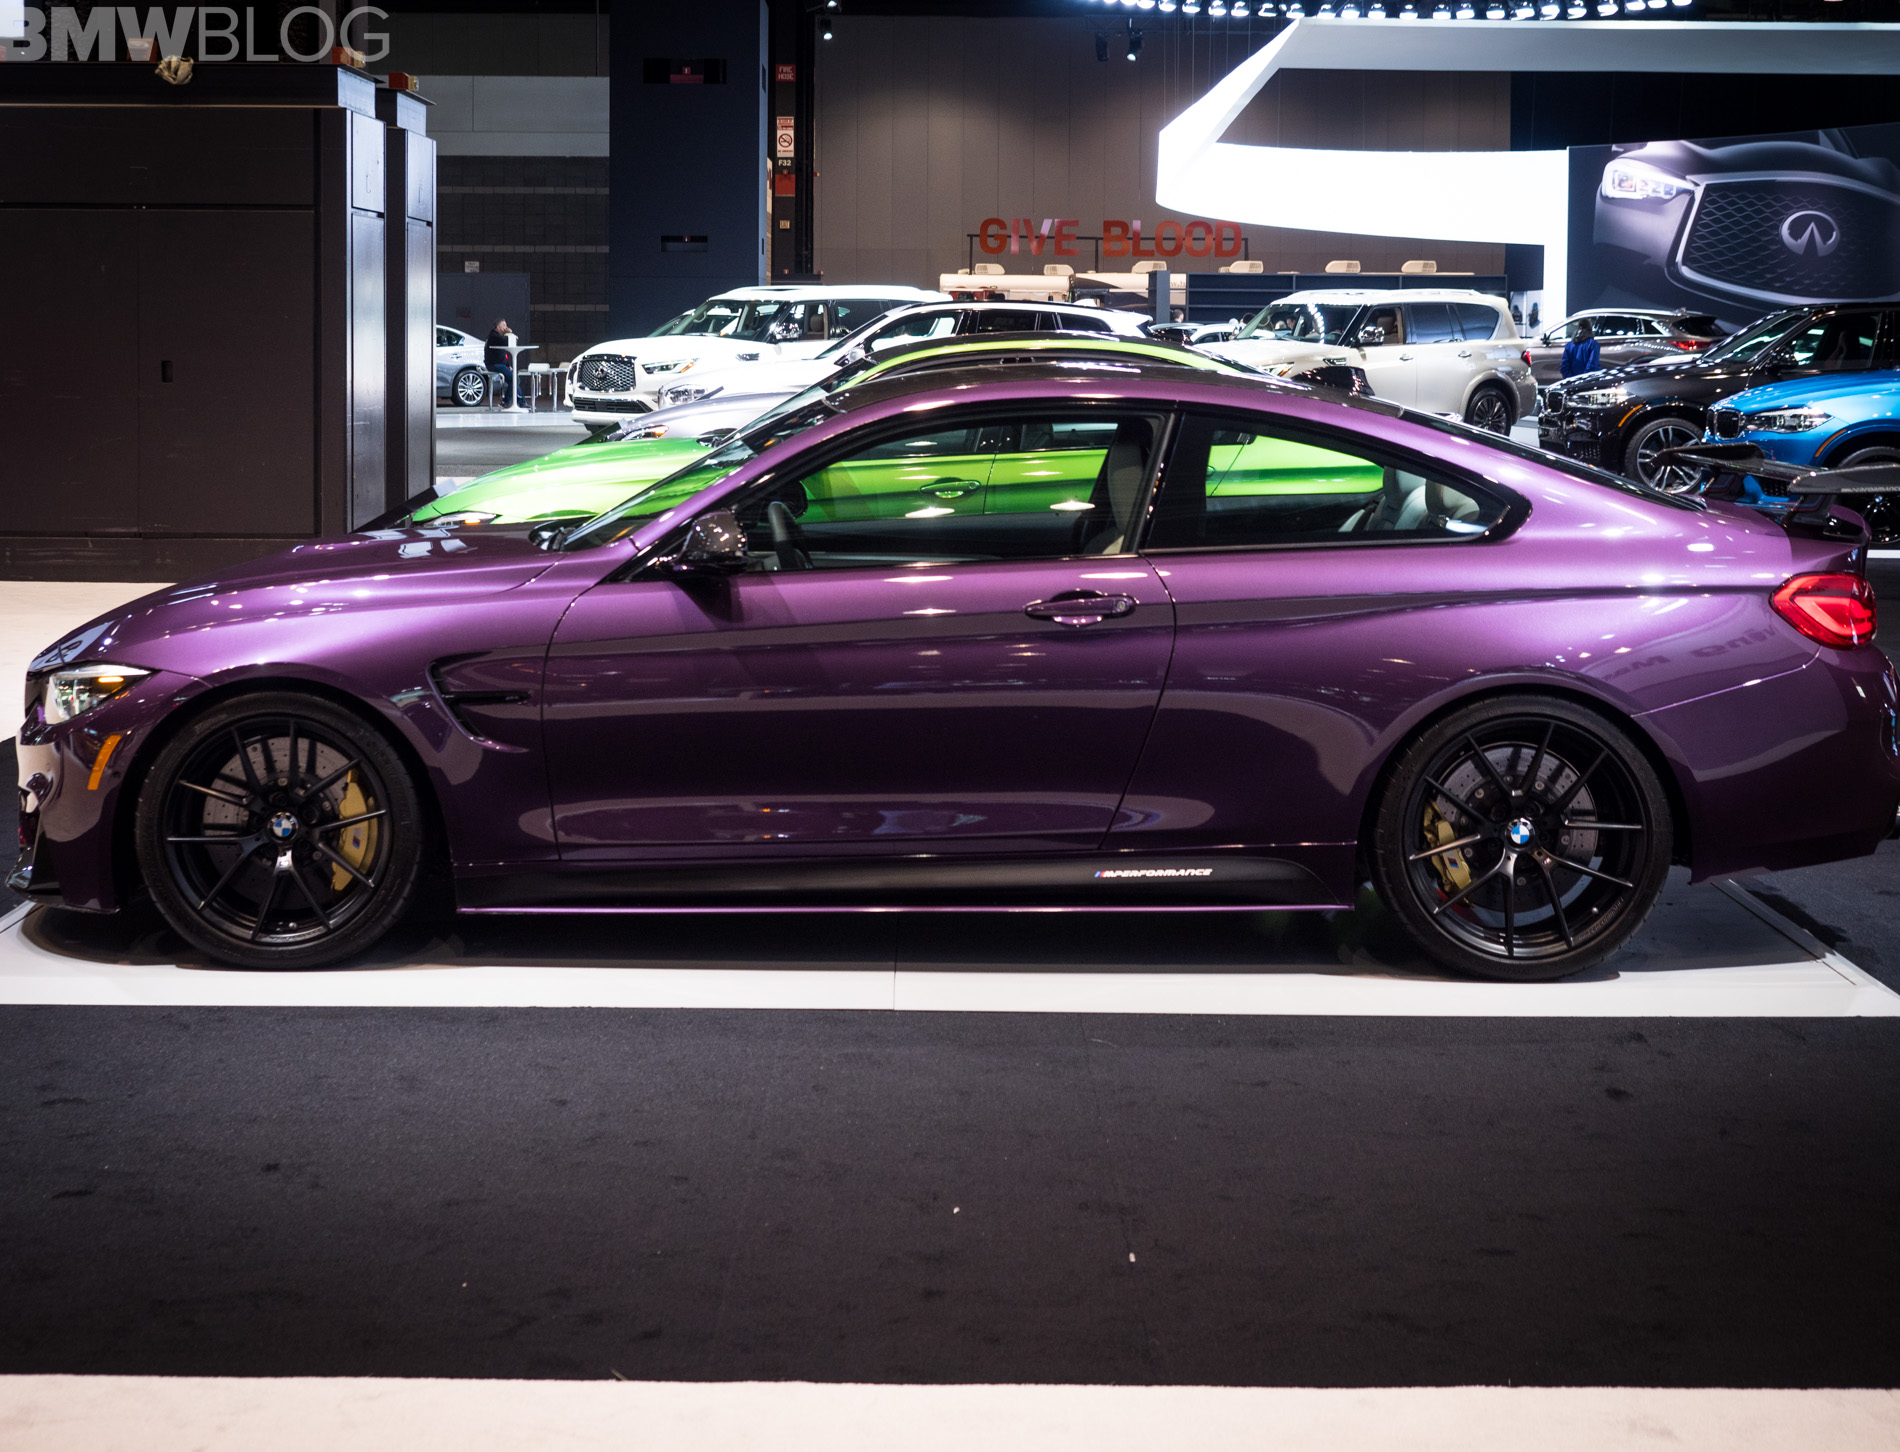 2018 Chicago Auto Show Bmw M4 In Purple Silk With M